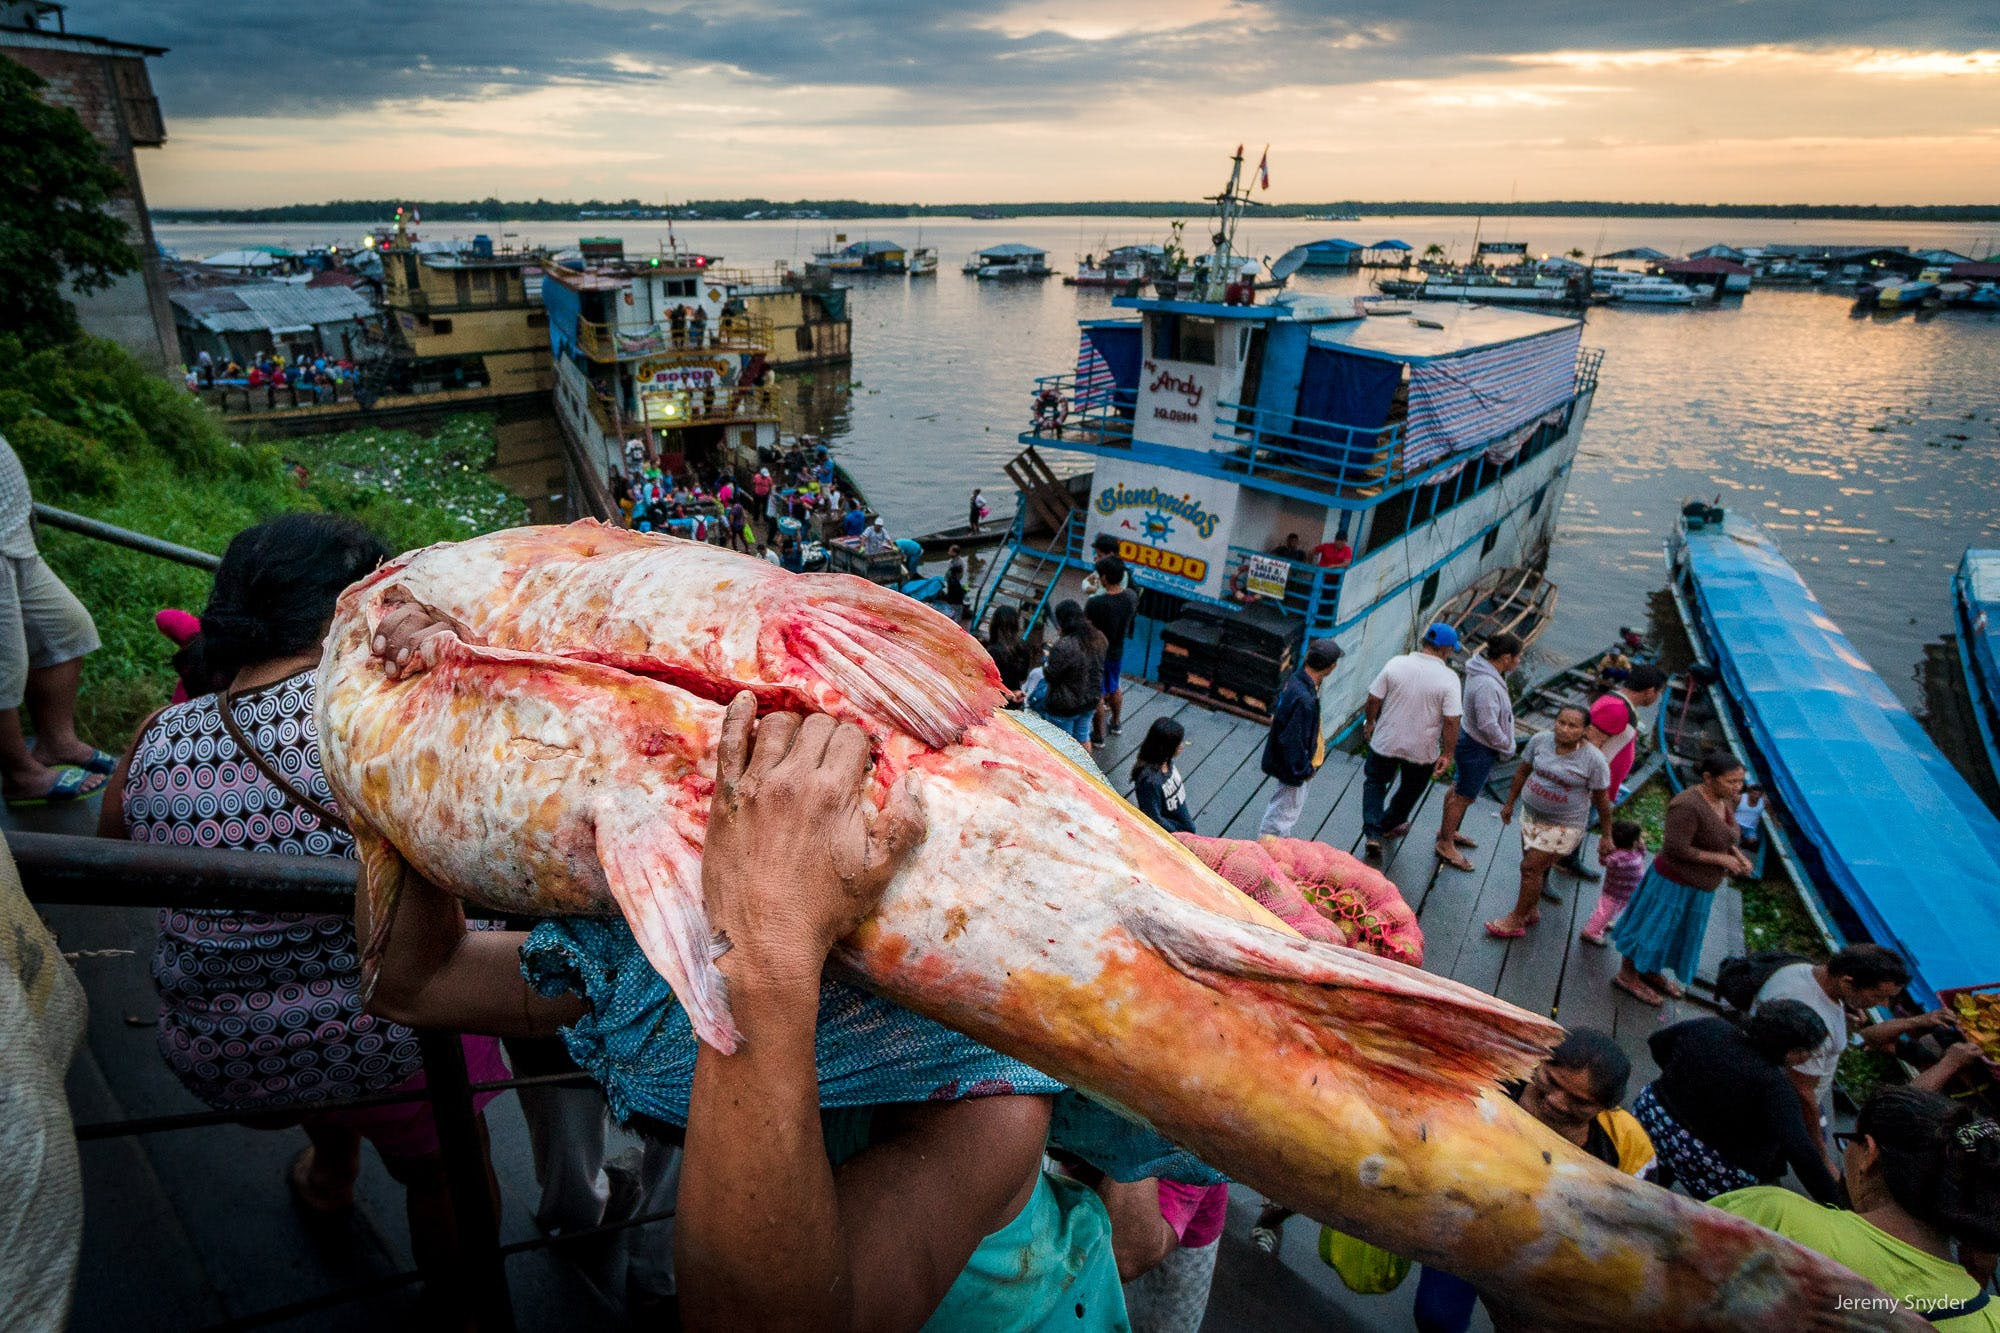 A giant catfish from the fisheries of the Amazon river being carried up to market in Iquitos, Peru